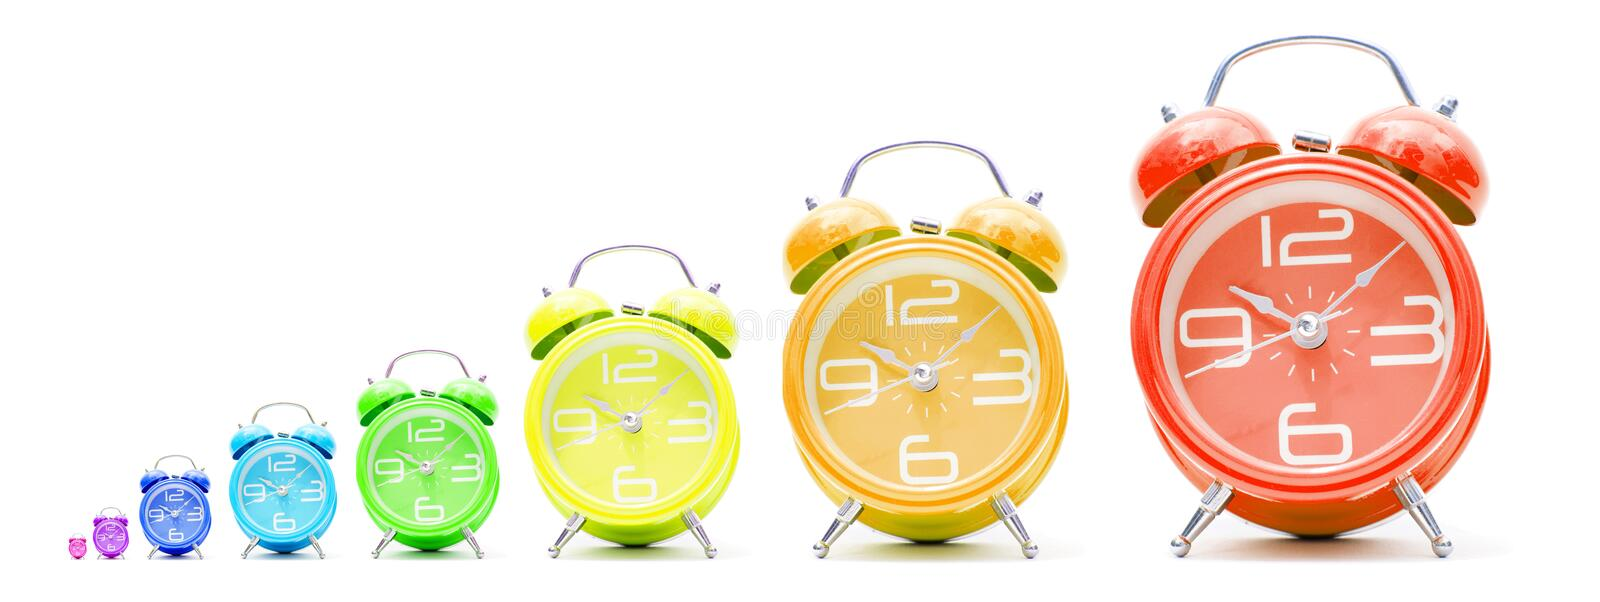 Colorful alarm clocks. A group of colorful alarm clocks in different sizes stock illustration